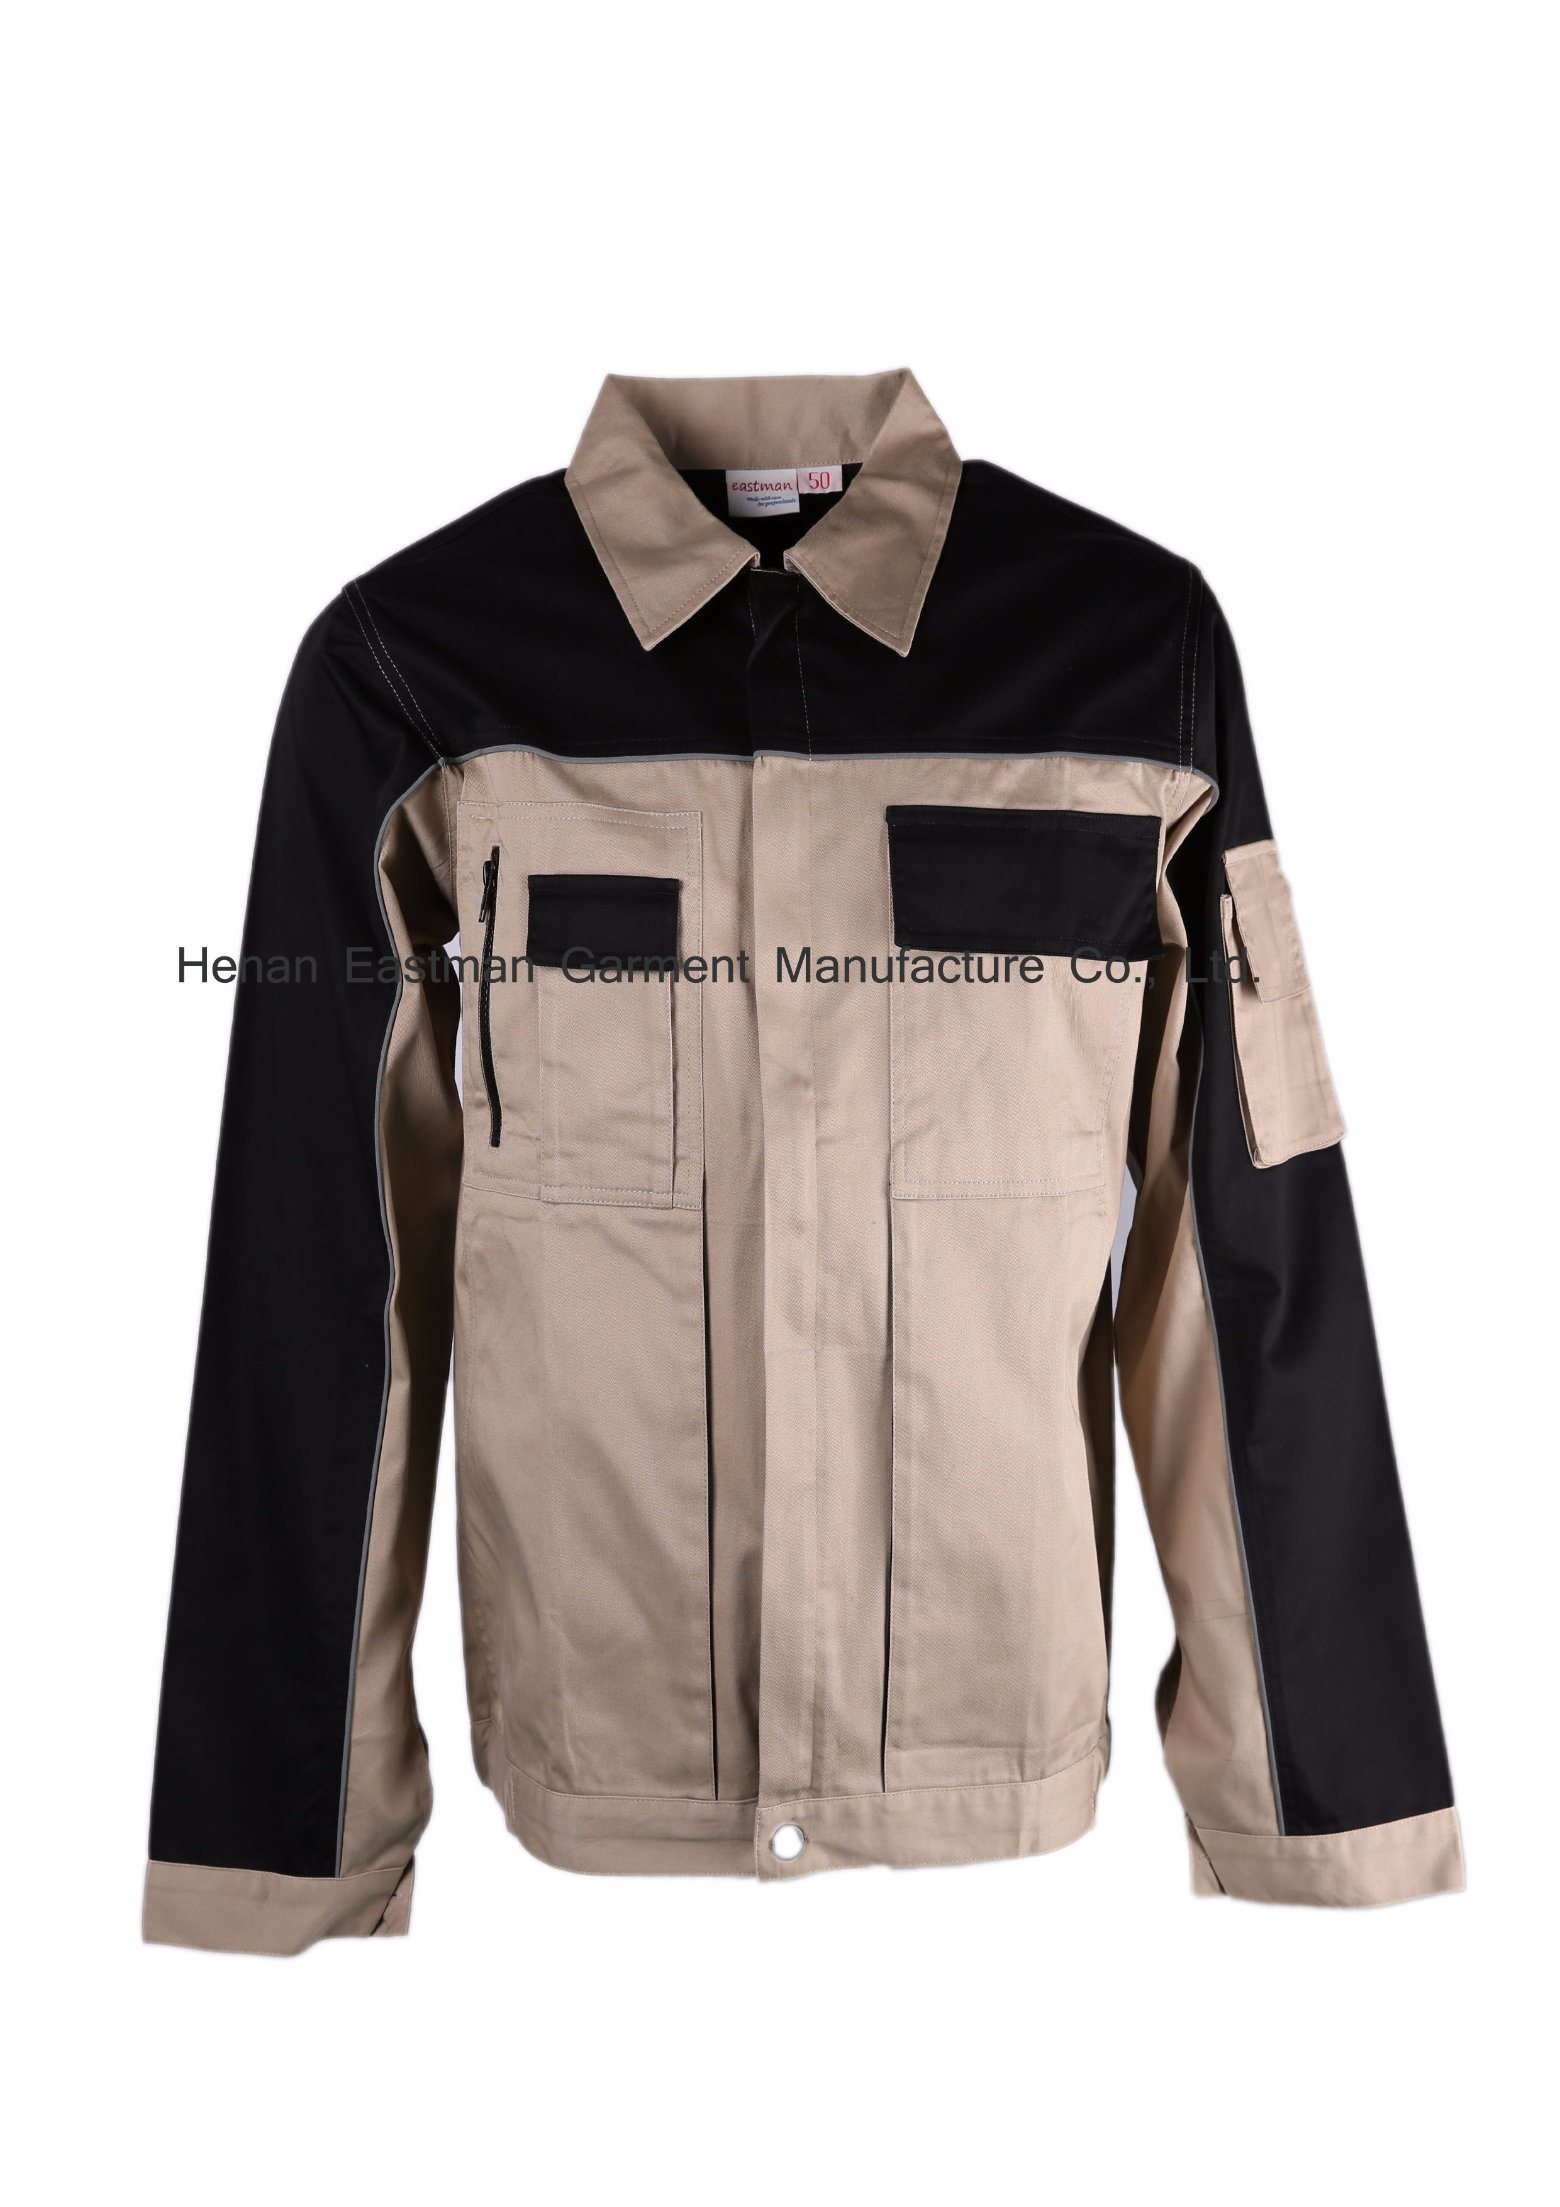 100% Cotton High Quality Workwear Jacket